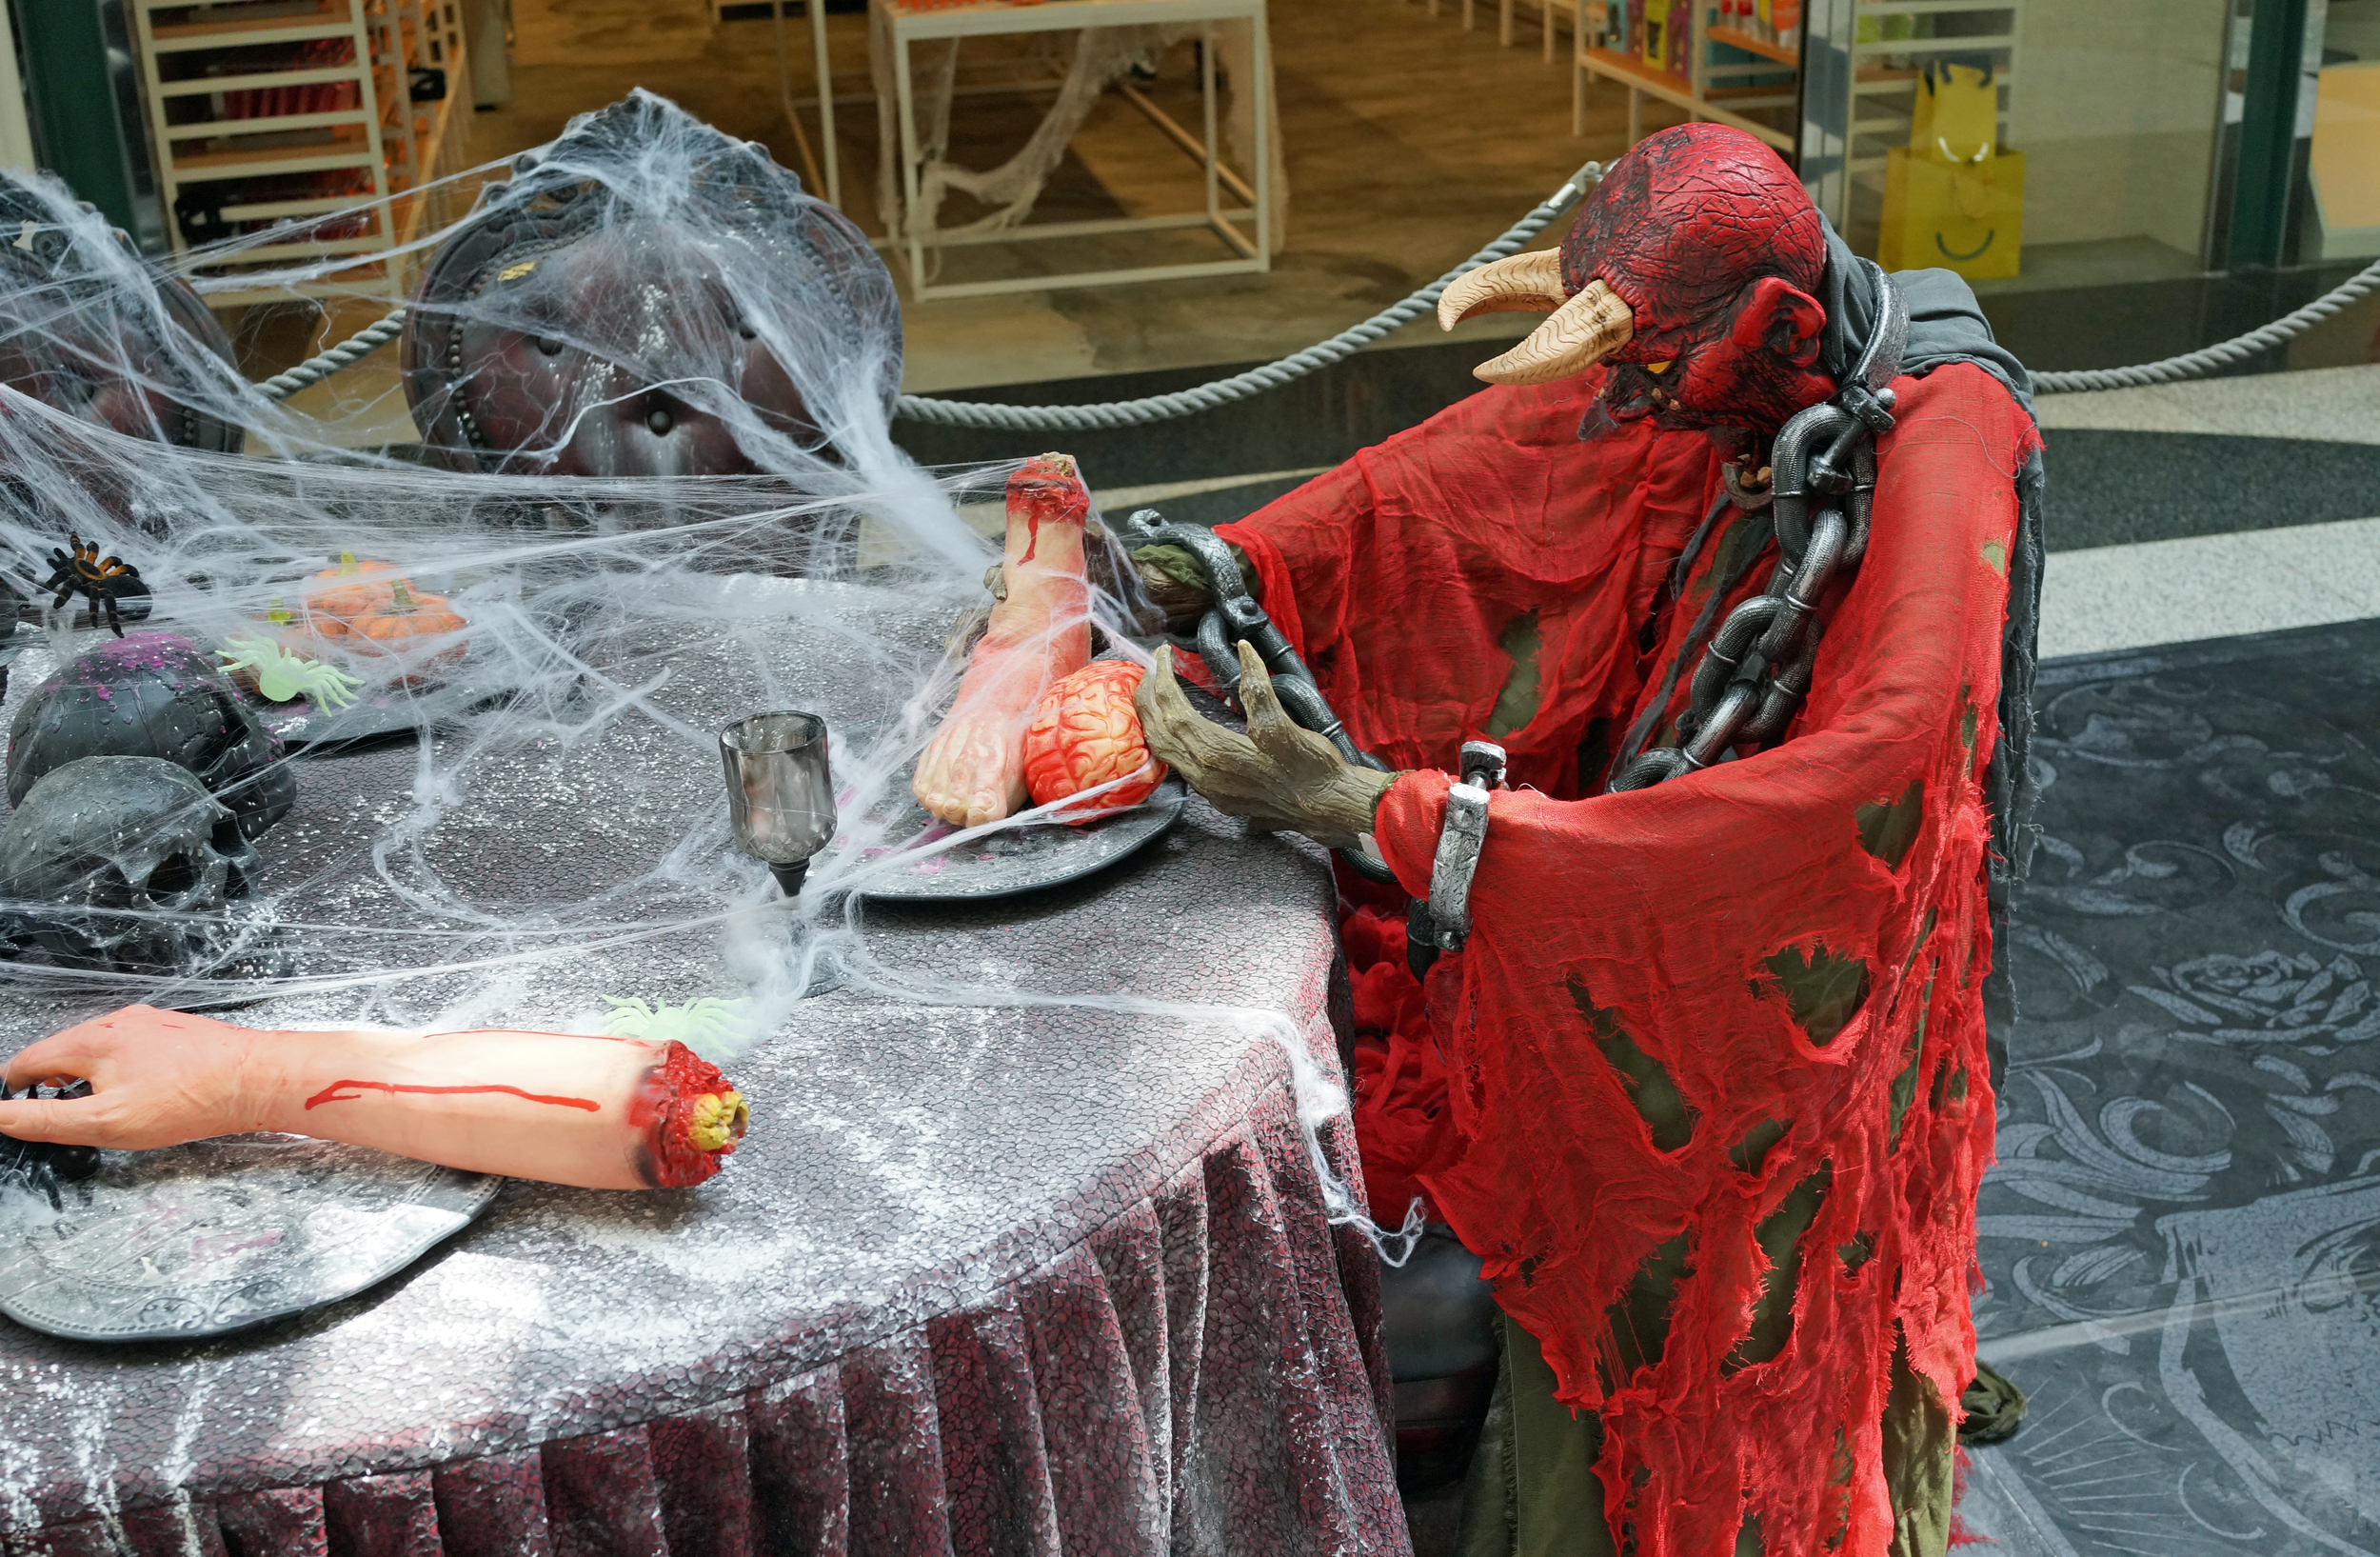 A pretty decent take on Halloween at the Peak Galleria at the Peak, Hong Kong.